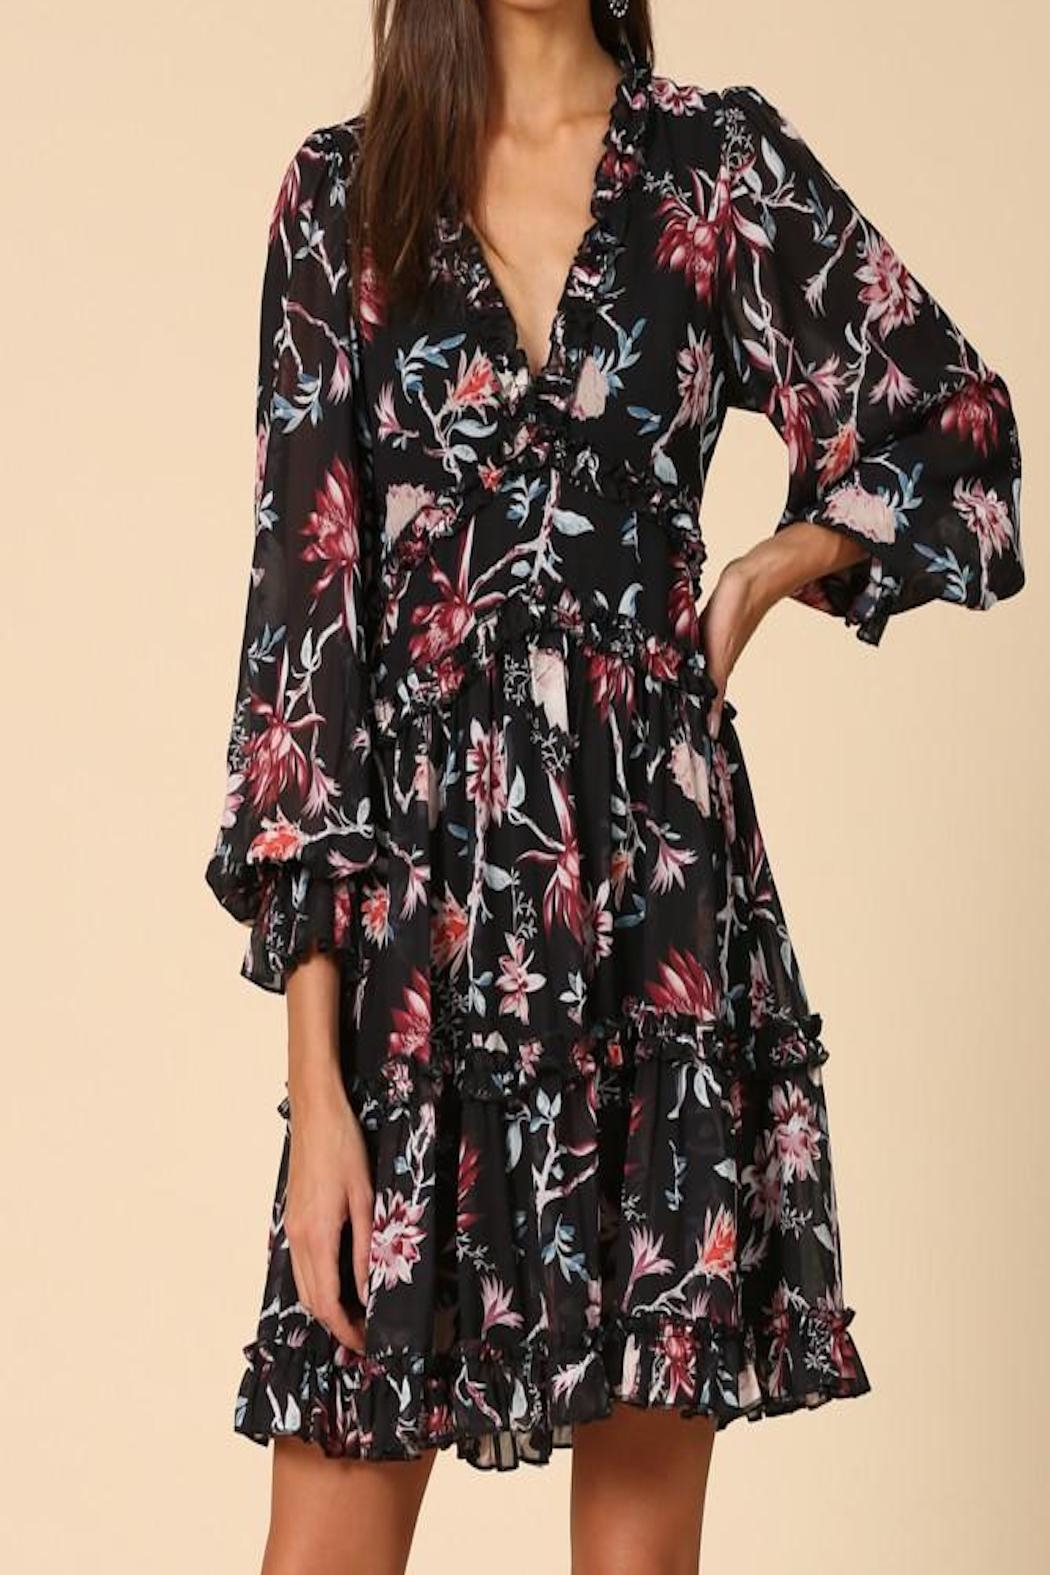 Apricot Lane St. Cloud Ruffled Floral Dress - Main Image